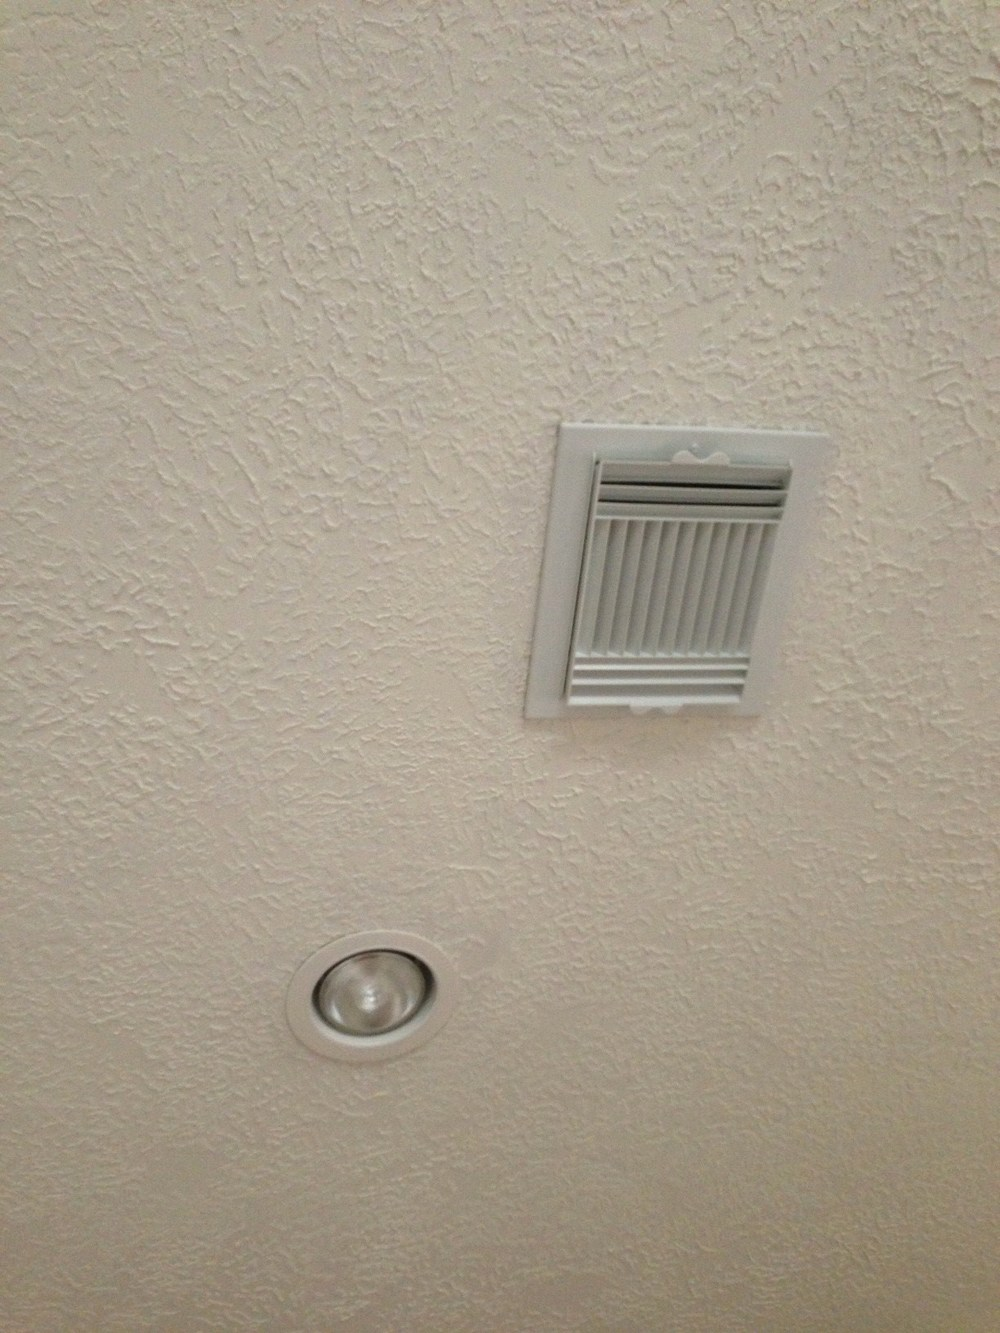 There are a few inexpensive things you need to remember to do when you paint the interior of your house - especially when you painting your ceilings. One of the few: Change the air vents and trim kits on your recessed lighting.